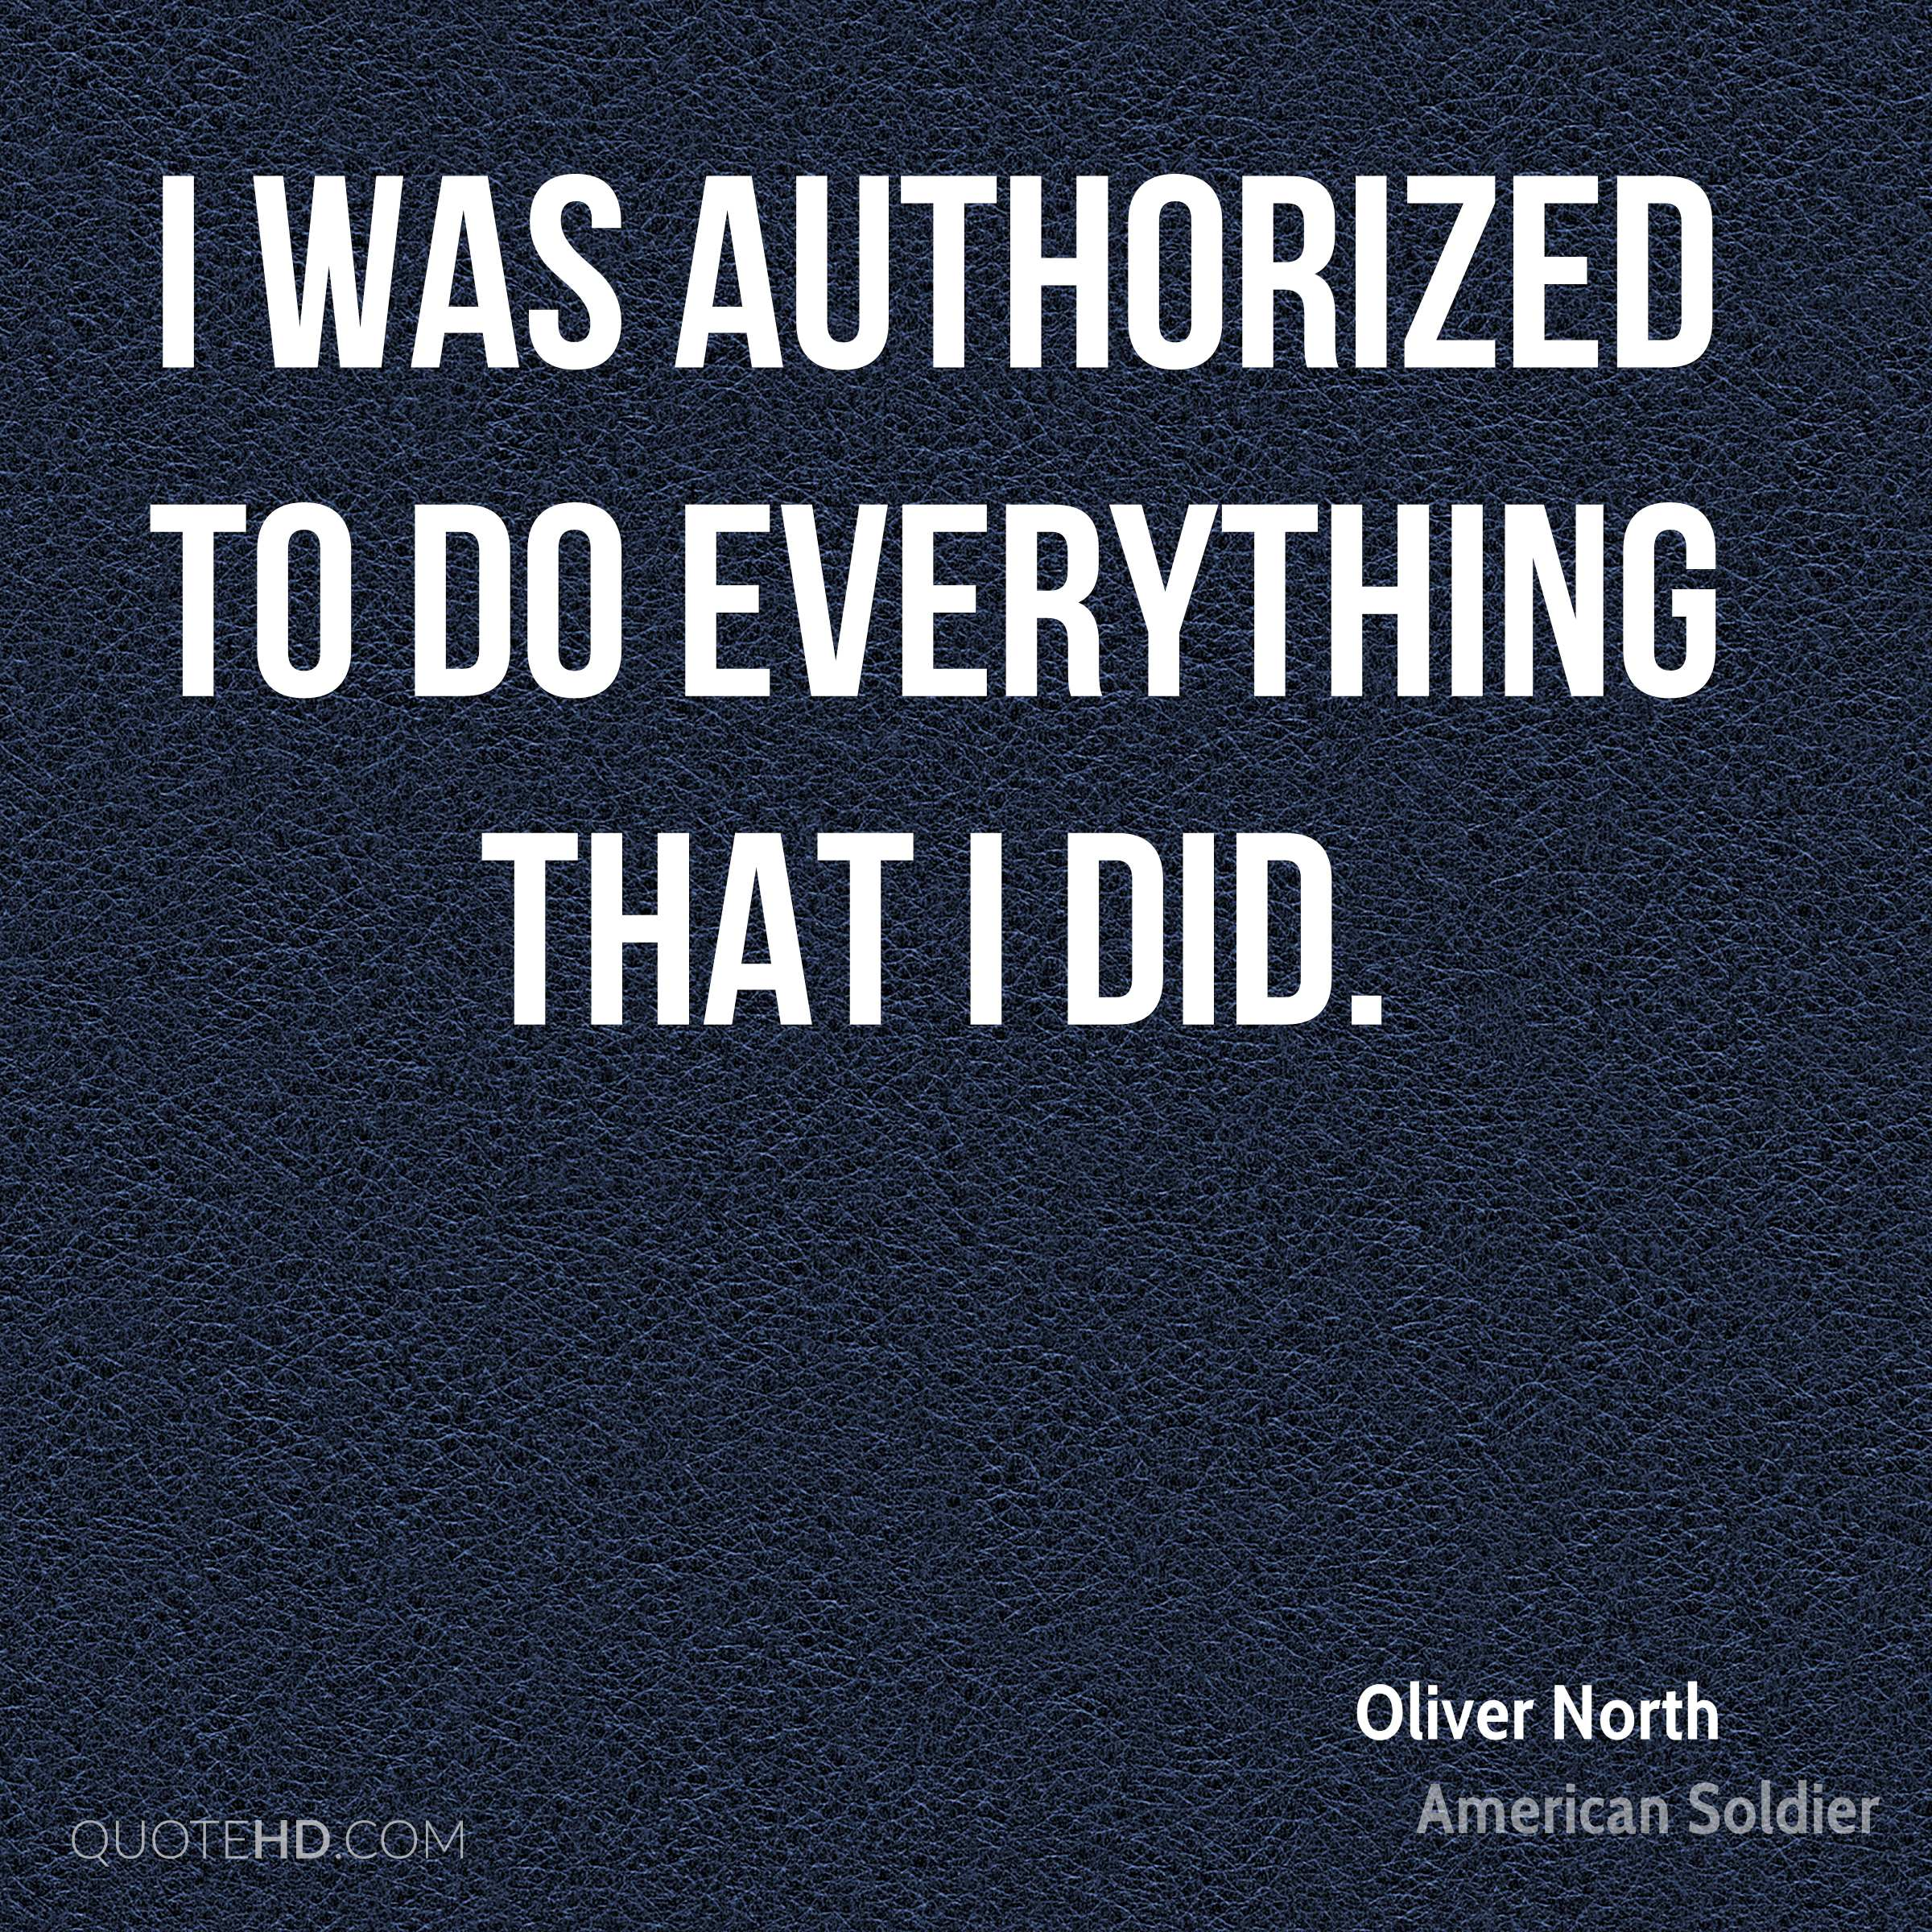 I was authorized to do everything that I did.